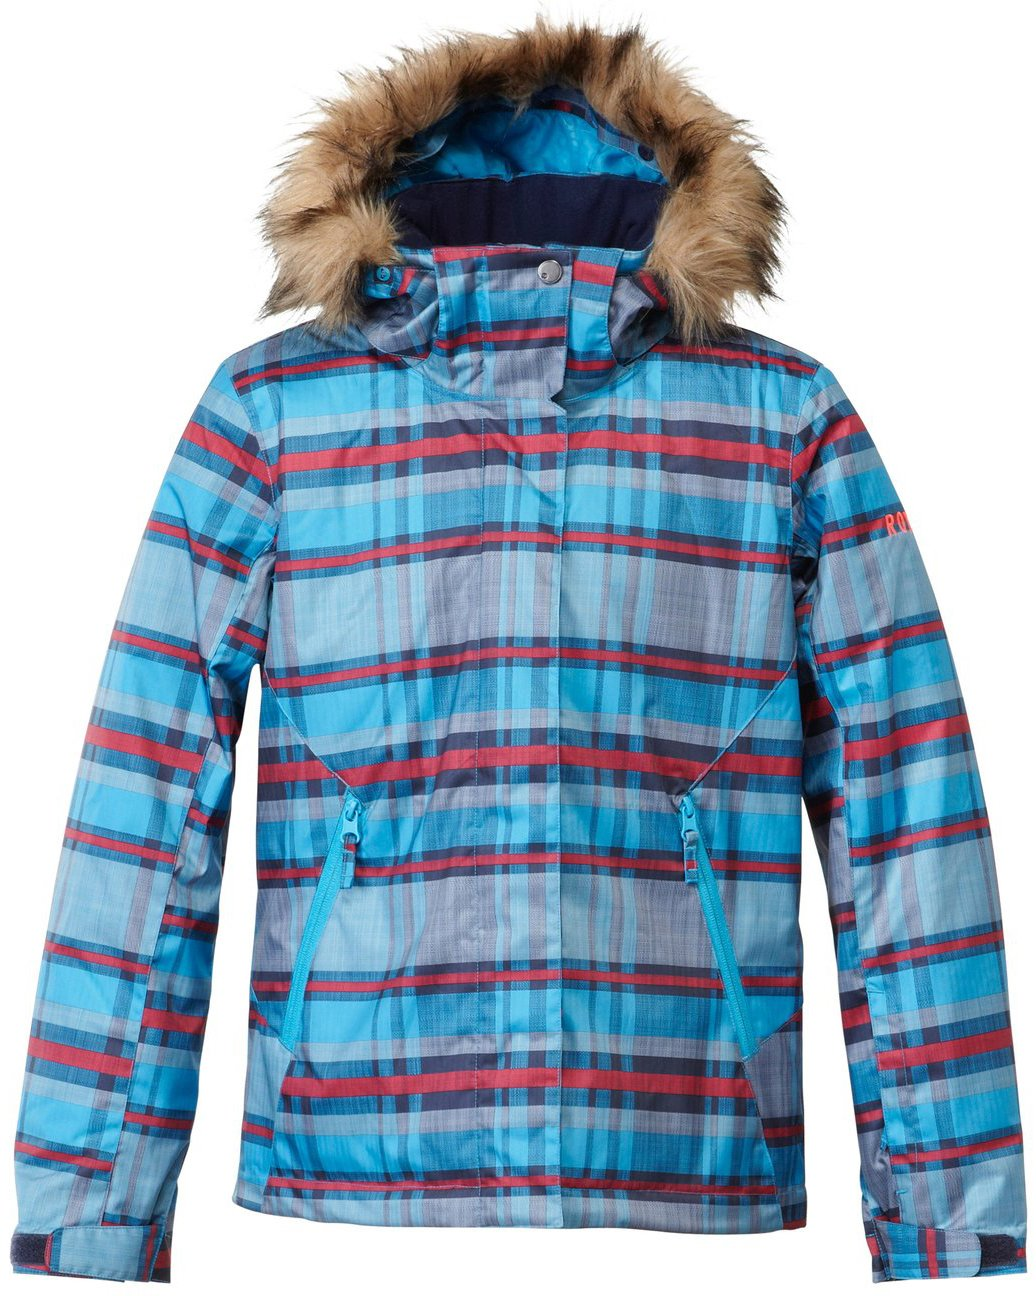 Roxy Girls Snow Jacket Youth Size 10 Small